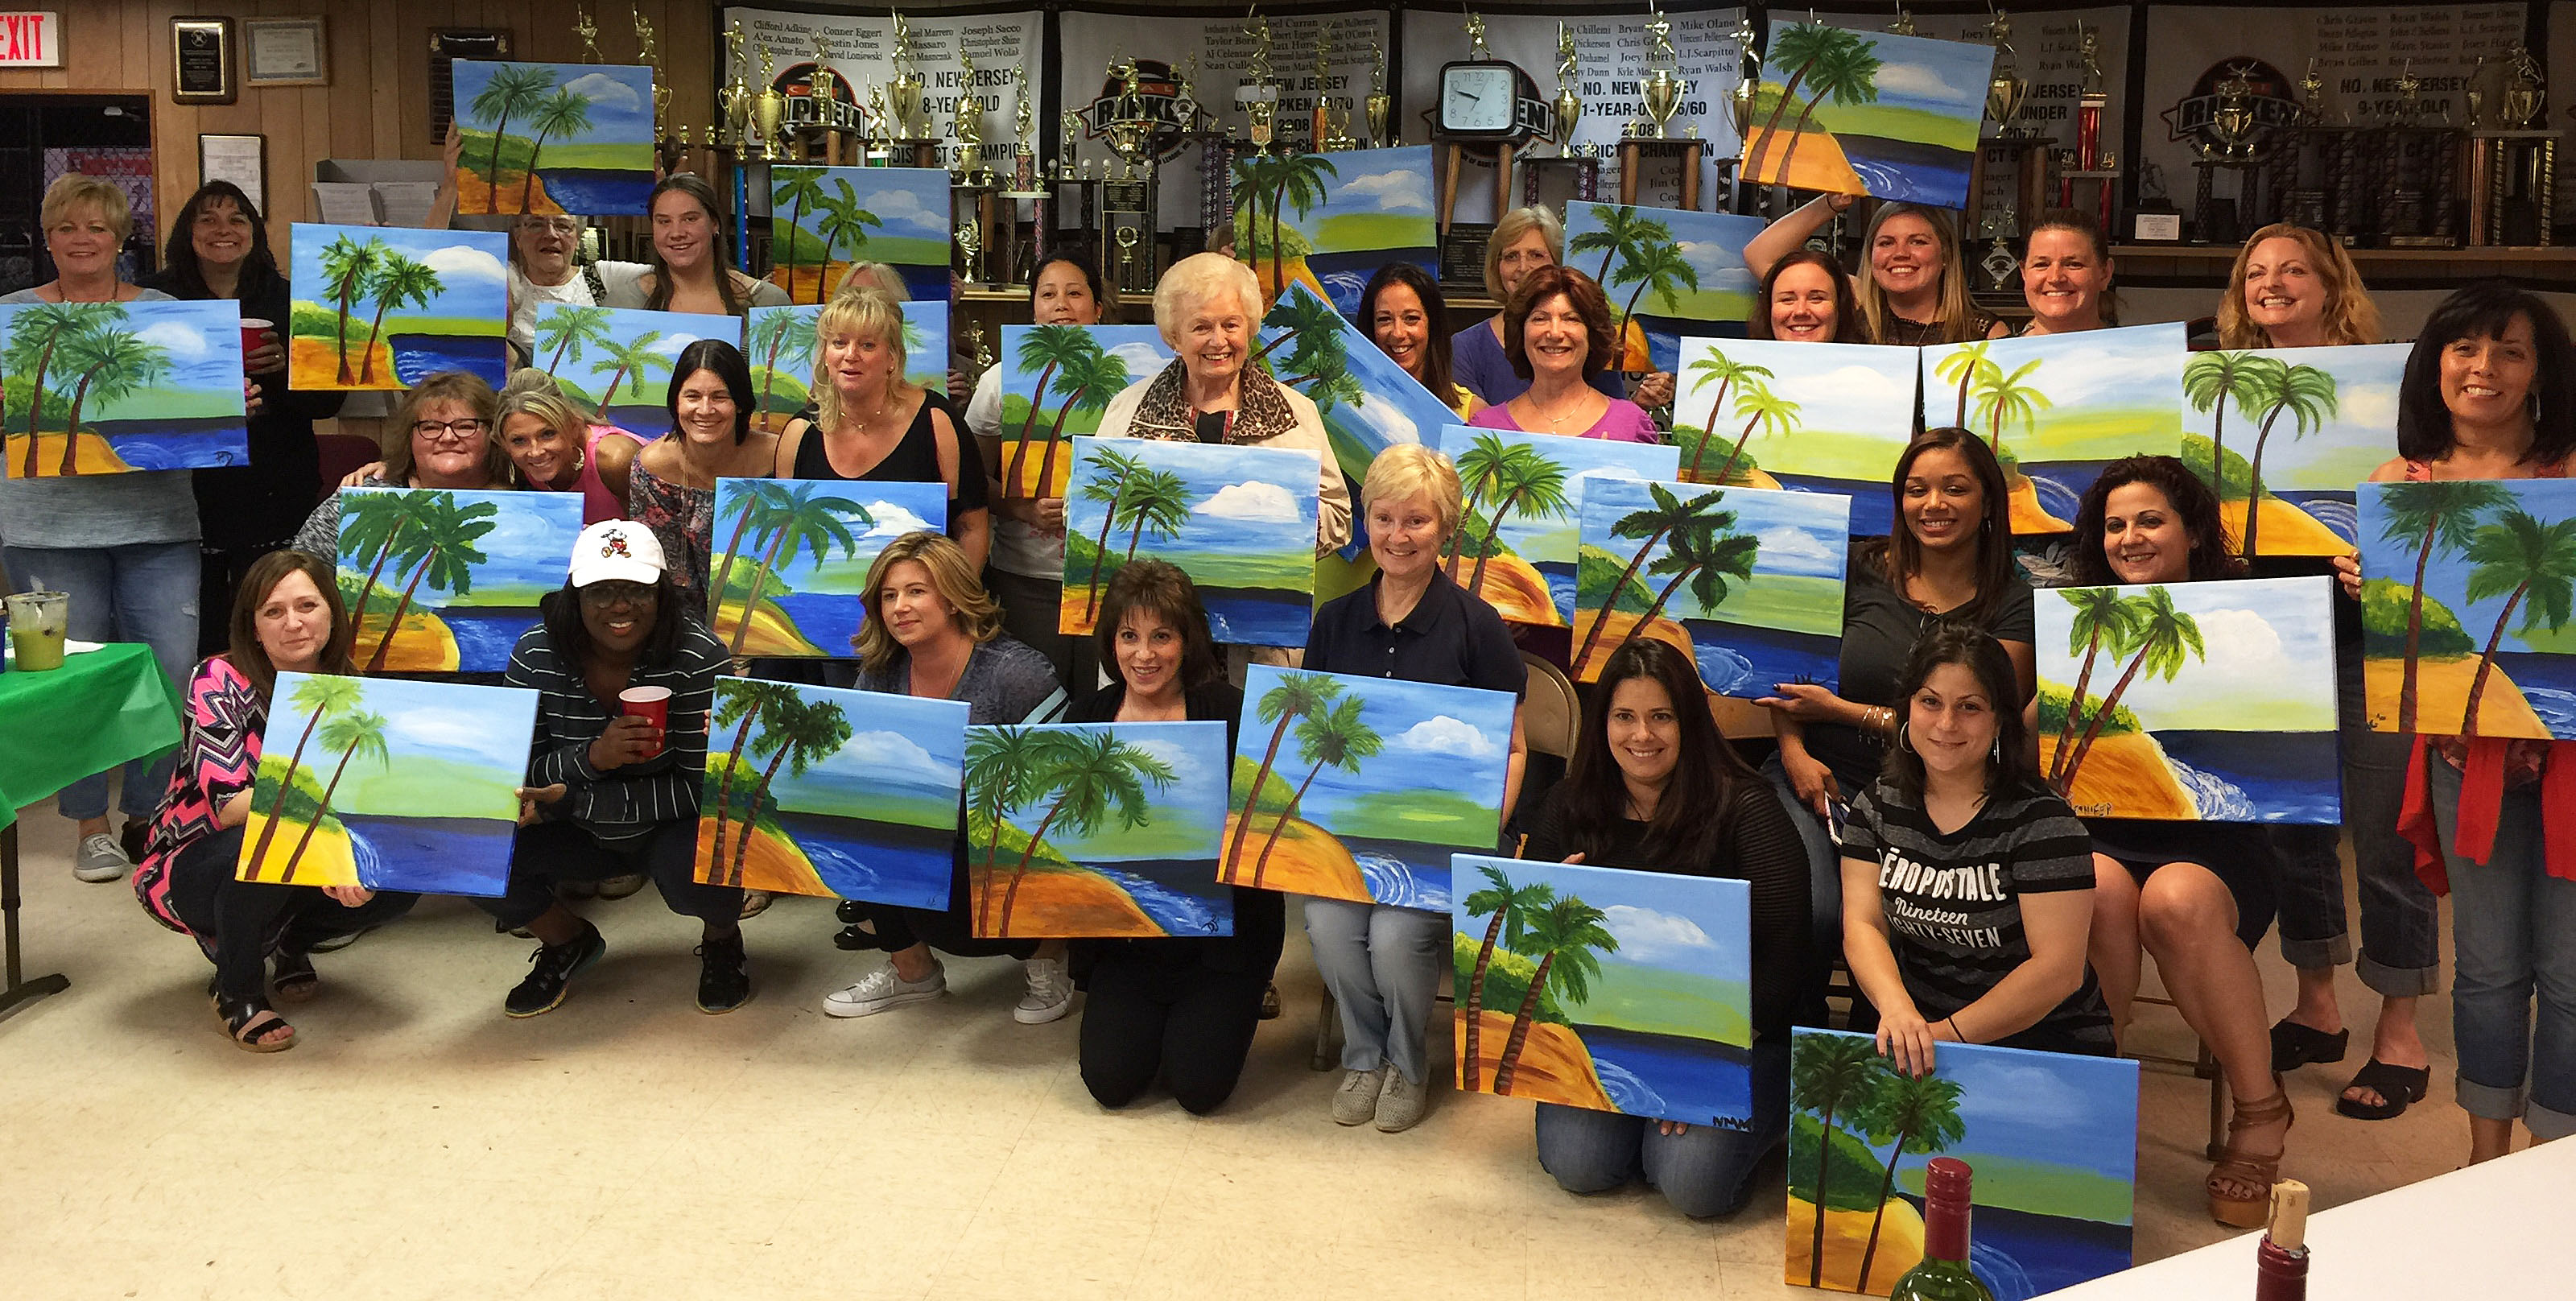 Nj private painting party in new jersey paint fun studio for Private paint party